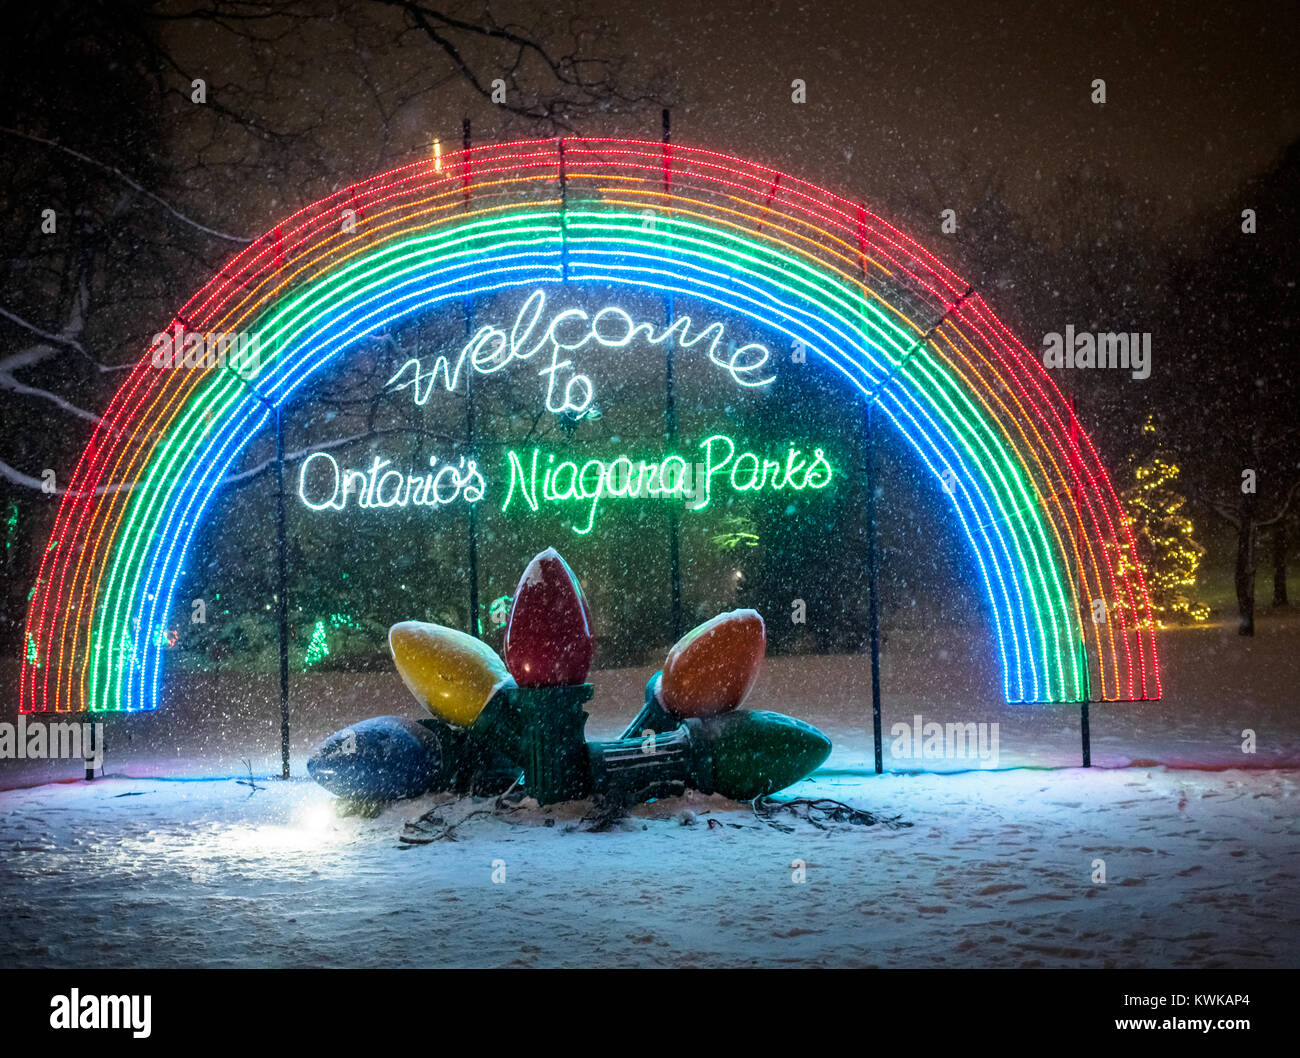 Winter festival of lights showing illuminated lights forming a rainbow at Ontario's Niagara Parks on a snowy - Stock Image